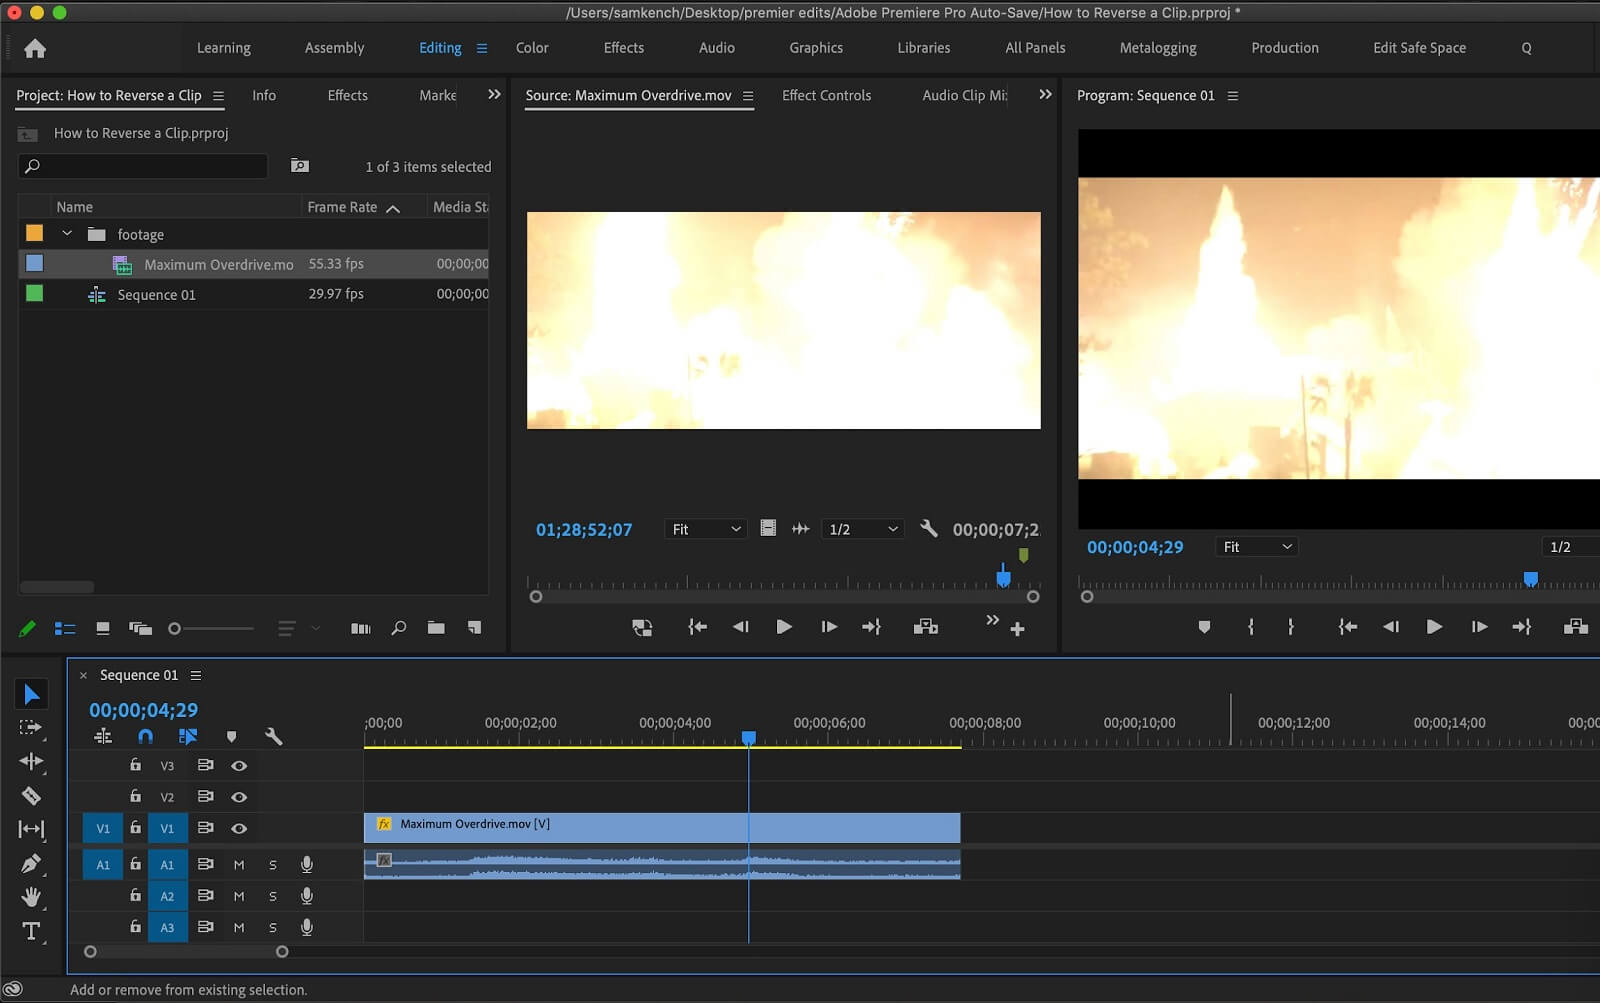 How To Reverse a Clip im Premiere Pro - Second Image